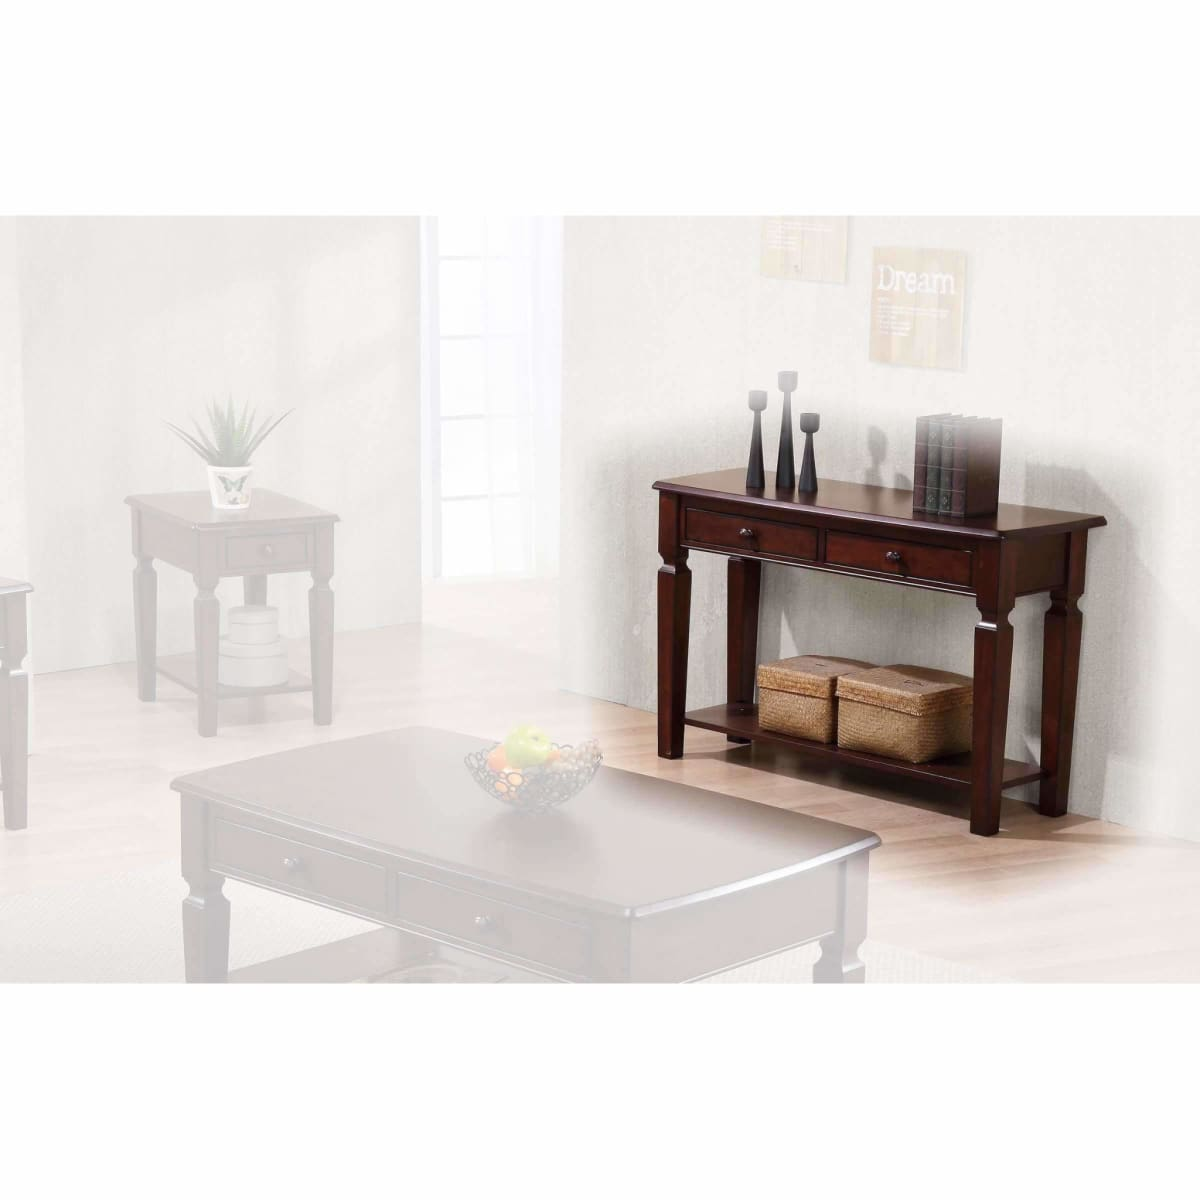 Santa Fe 48 Sofa Table - CONSOLE TABLE